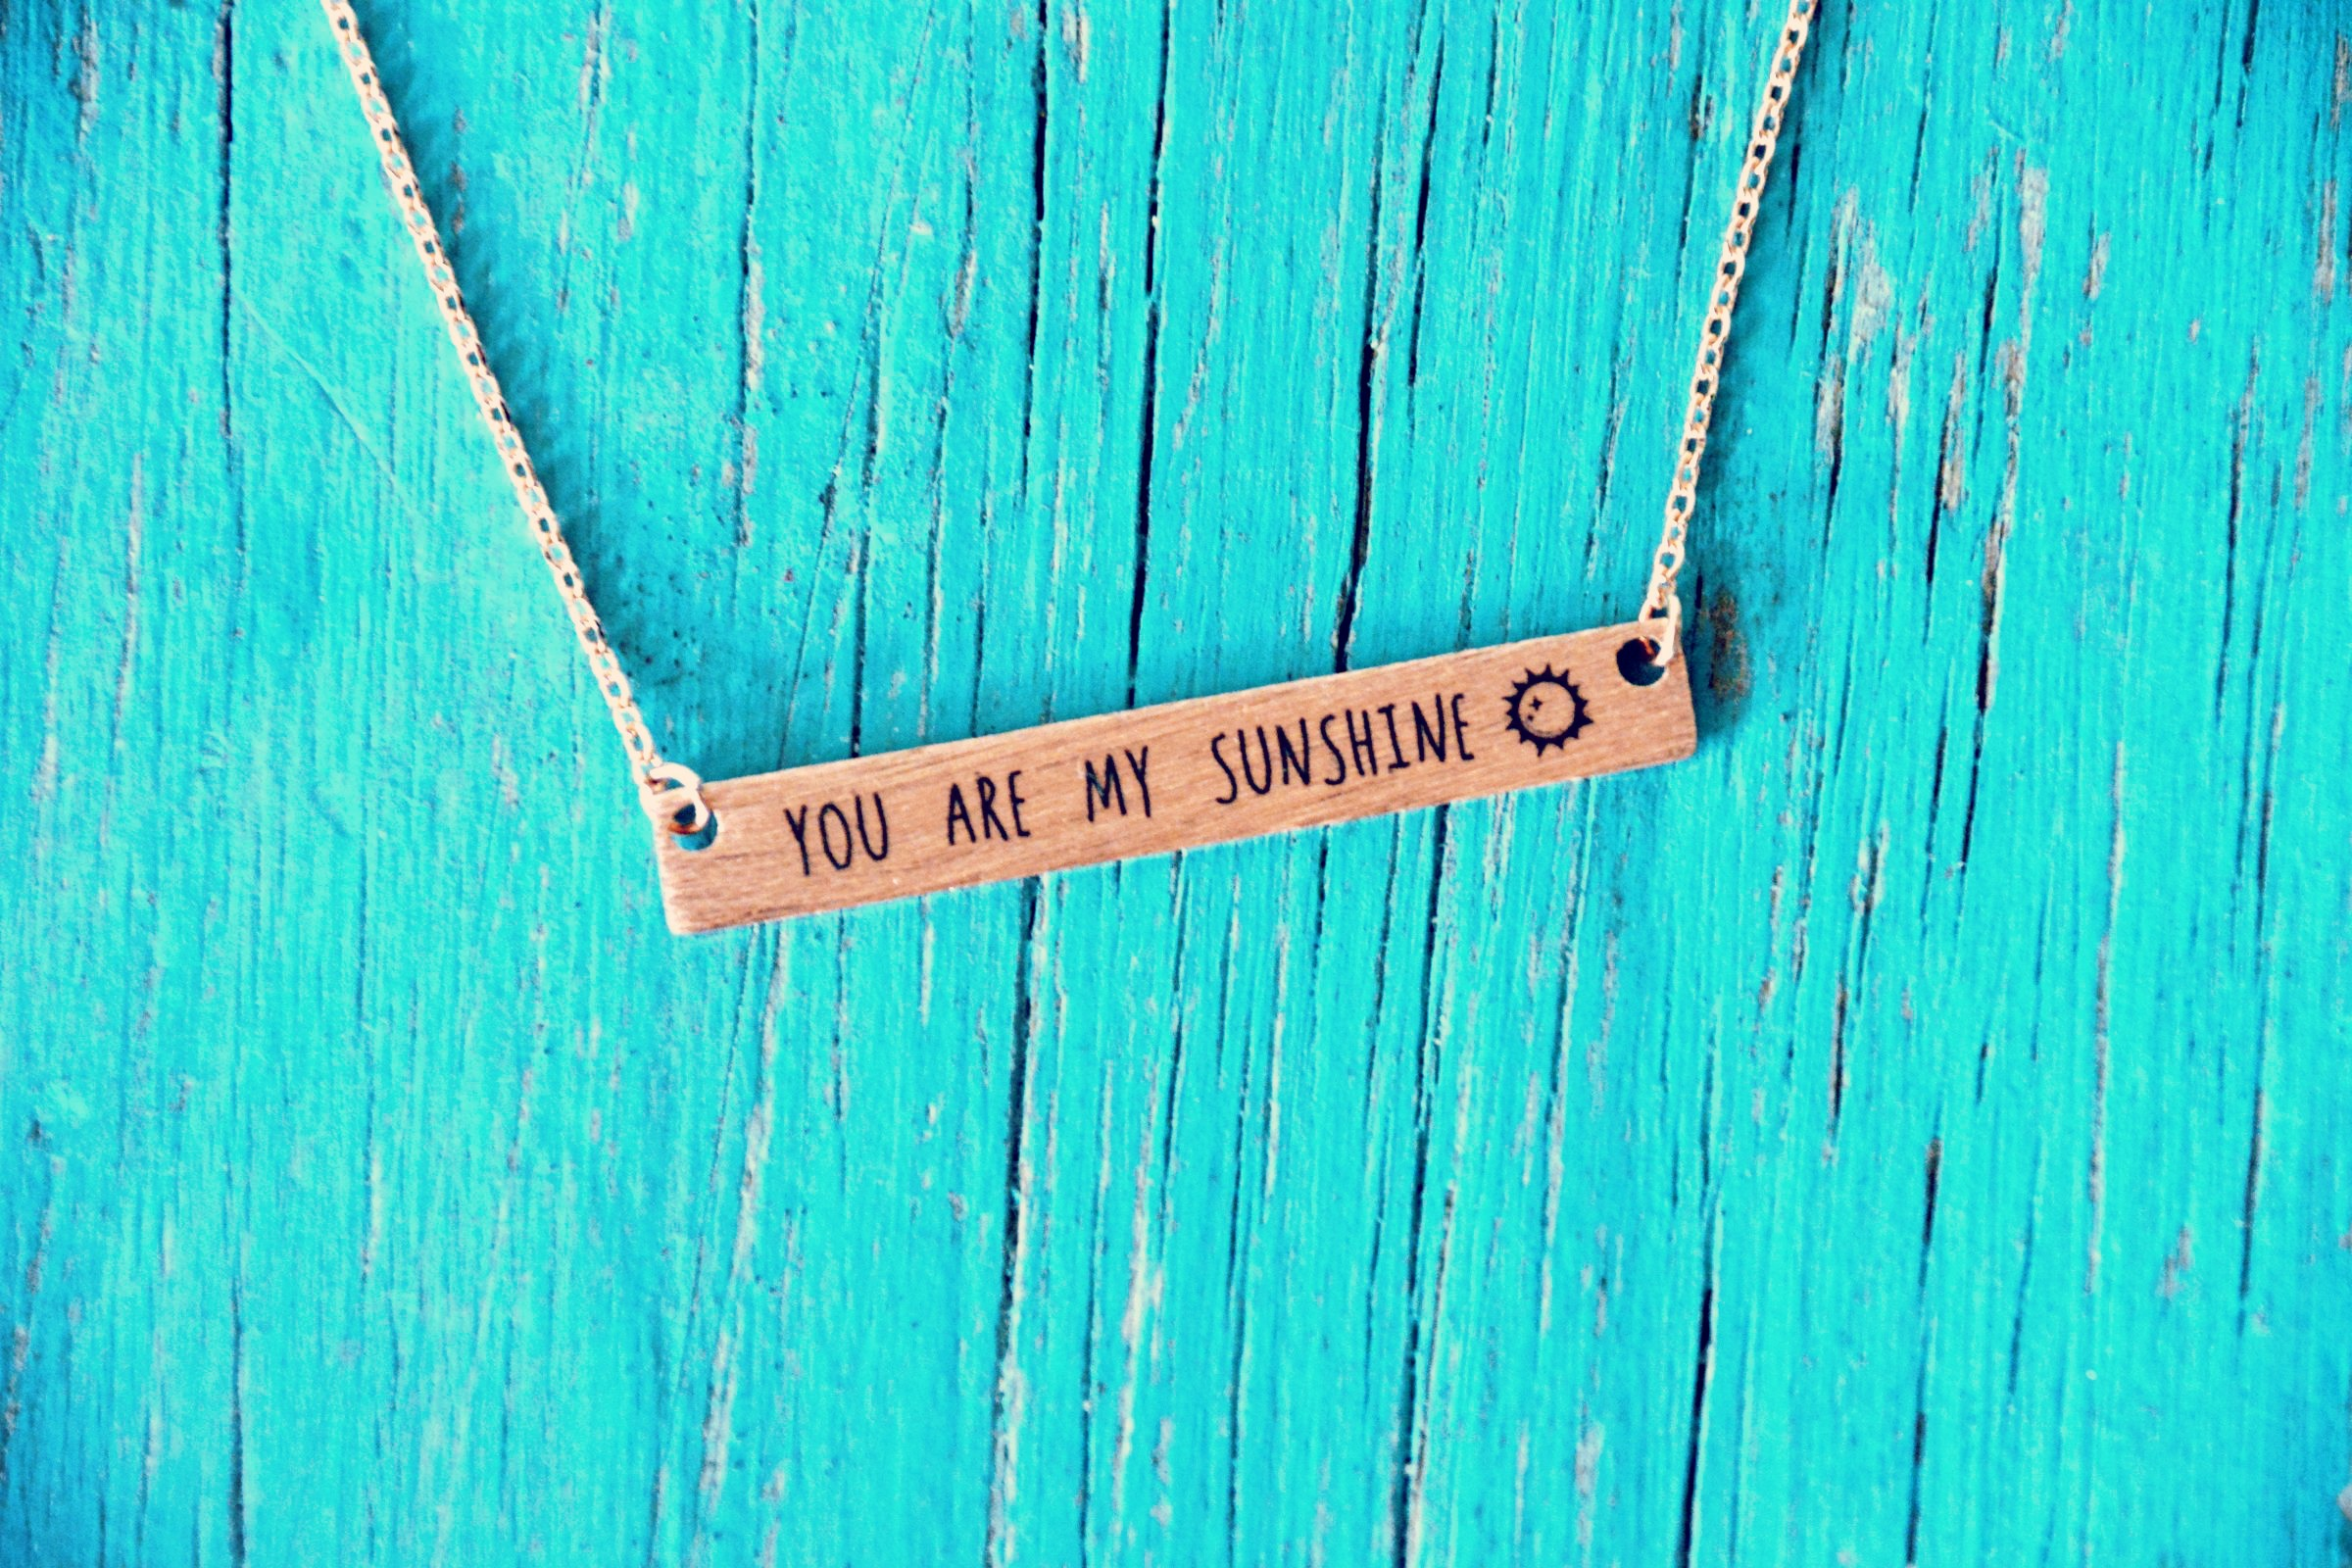 Fine chain necklace in a rose gold style finish, with a flat bar engraved with 'You are my sunshine' and a little sun picture.